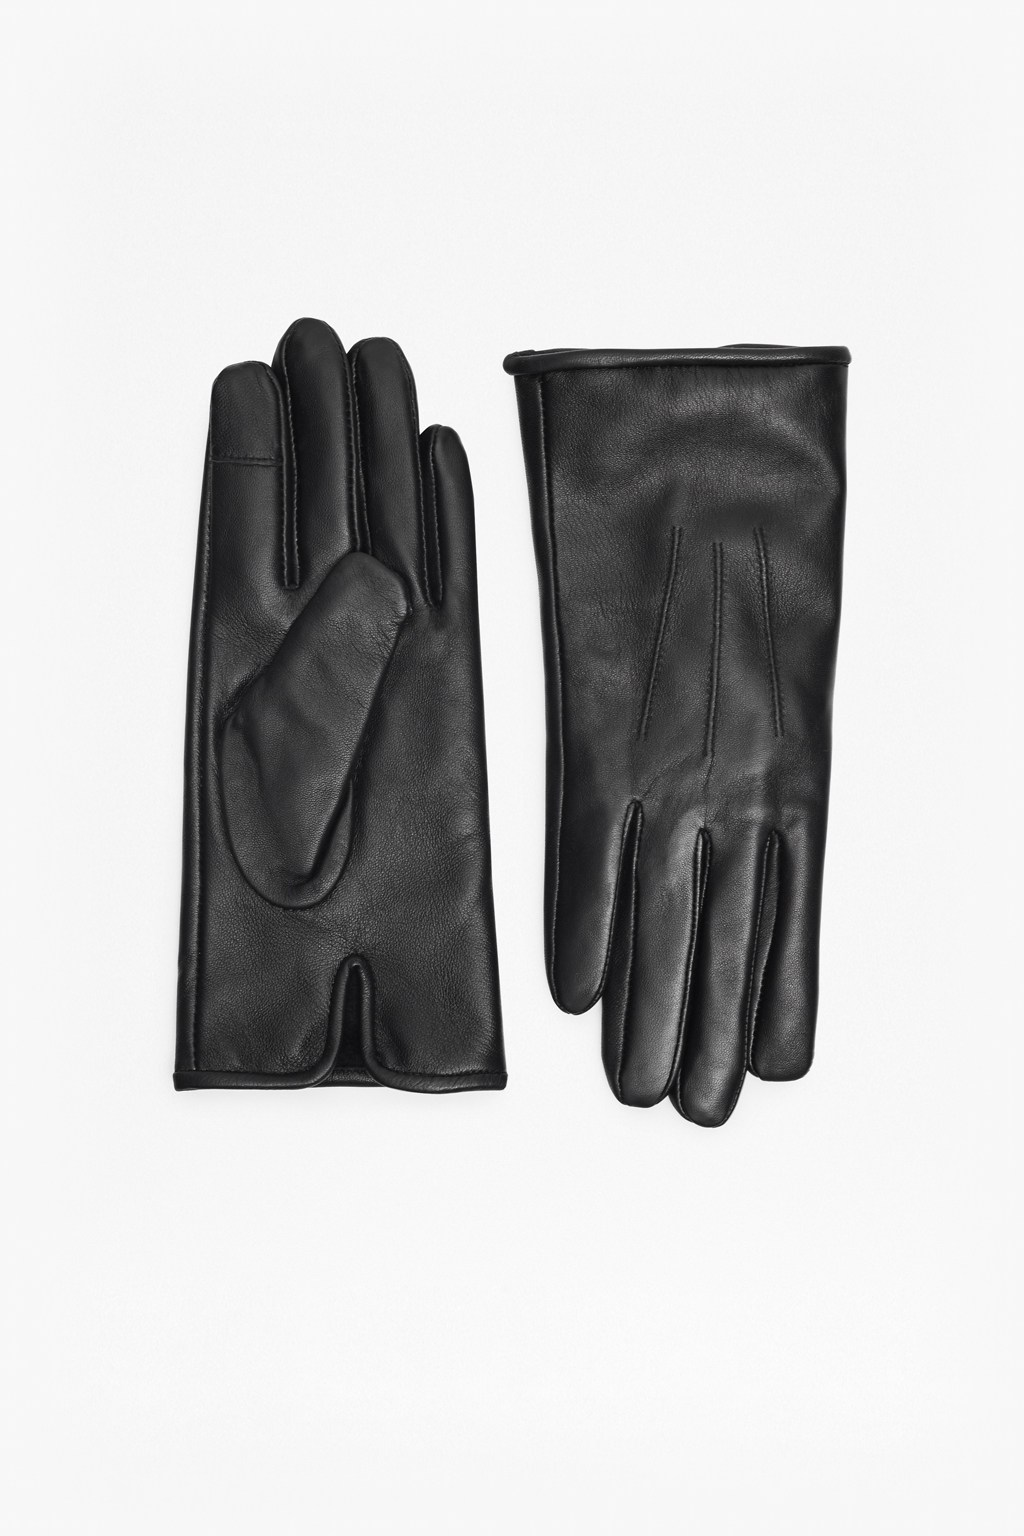 Mens leather touchscreen gloves uk - Leather Touchscreen Gloves Loading Images